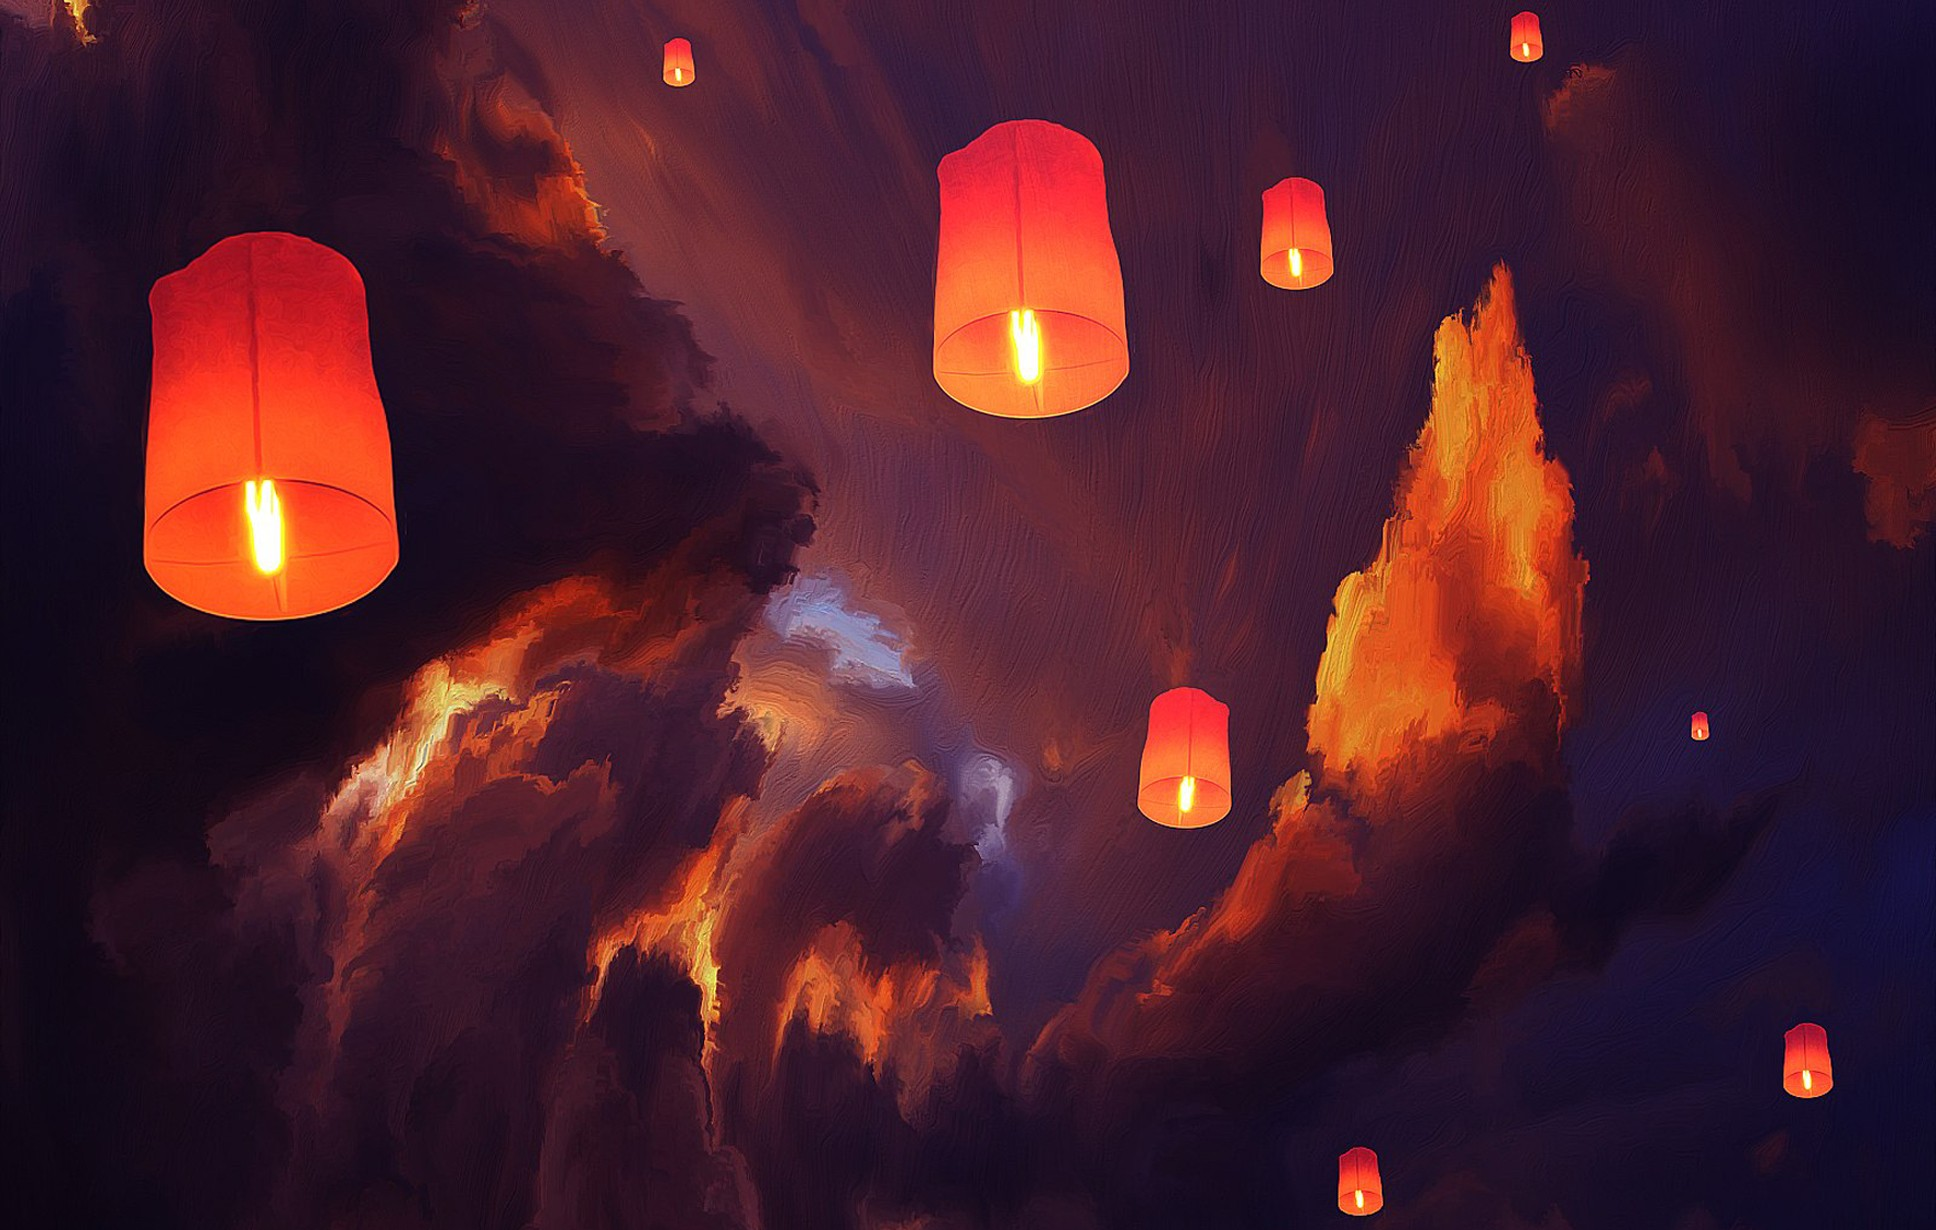 Sky Lanterns Wallpaper Iphone Lantern Sky Lanterns Clouds Artwork Floating